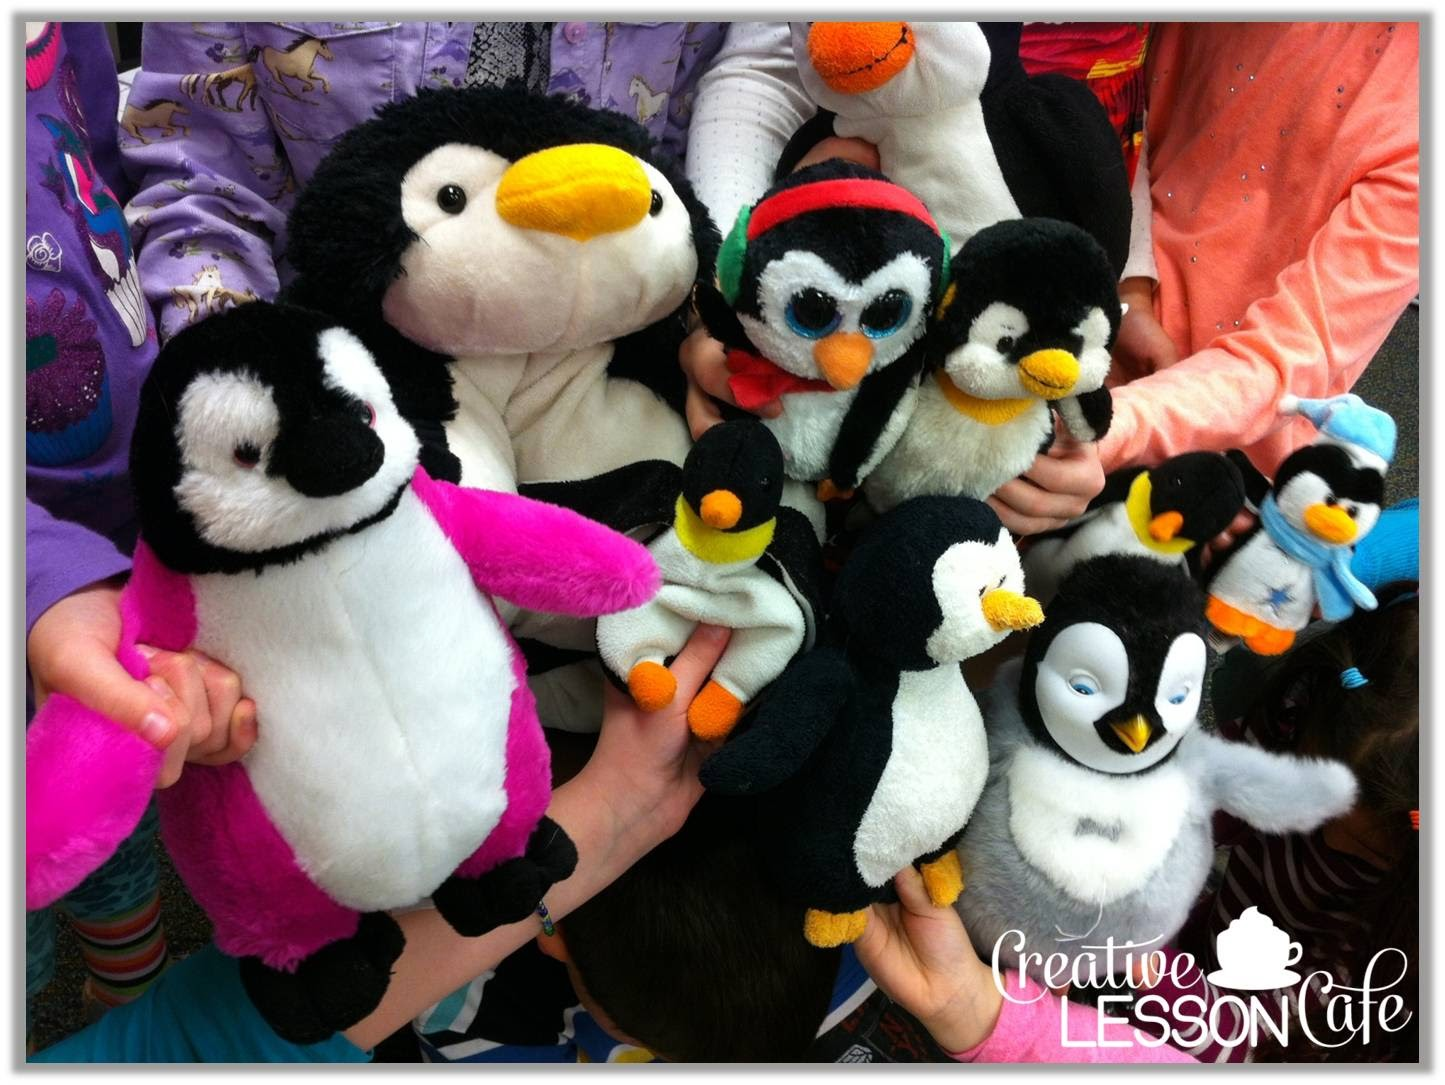 Creative Lesson Cafe Wacky Tacky The Penguin Fun